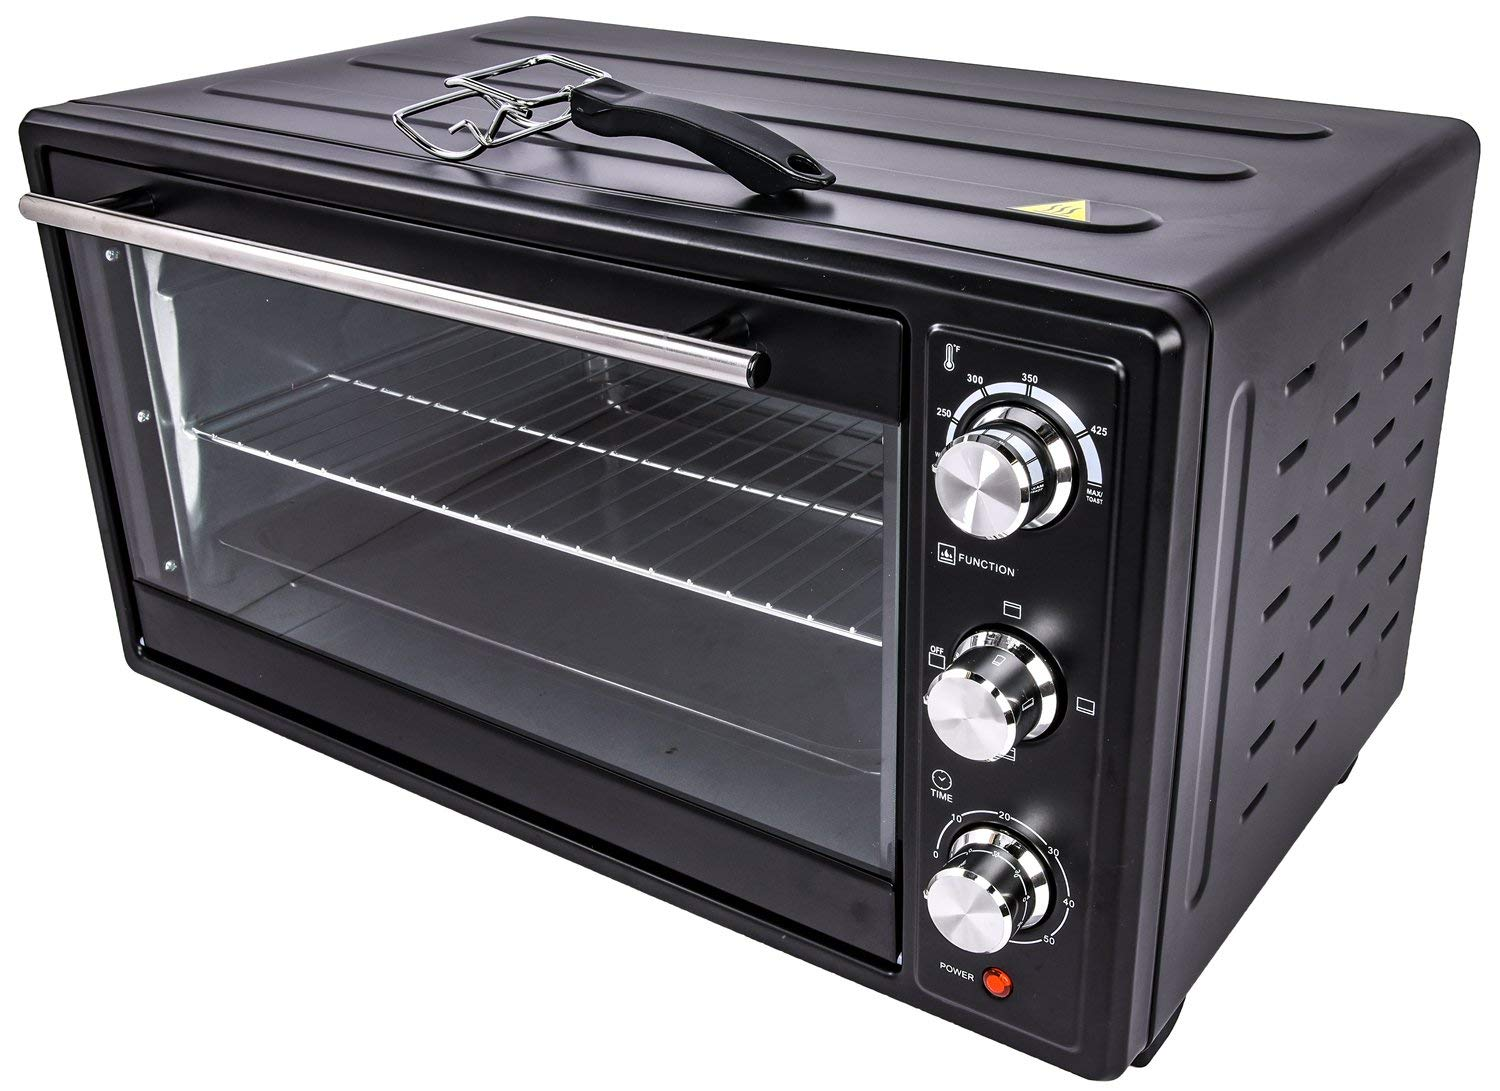 JEGS 81430 Bench Top Powder Coating Oven 1400 Watt 110 Volt Operates up to 450 d